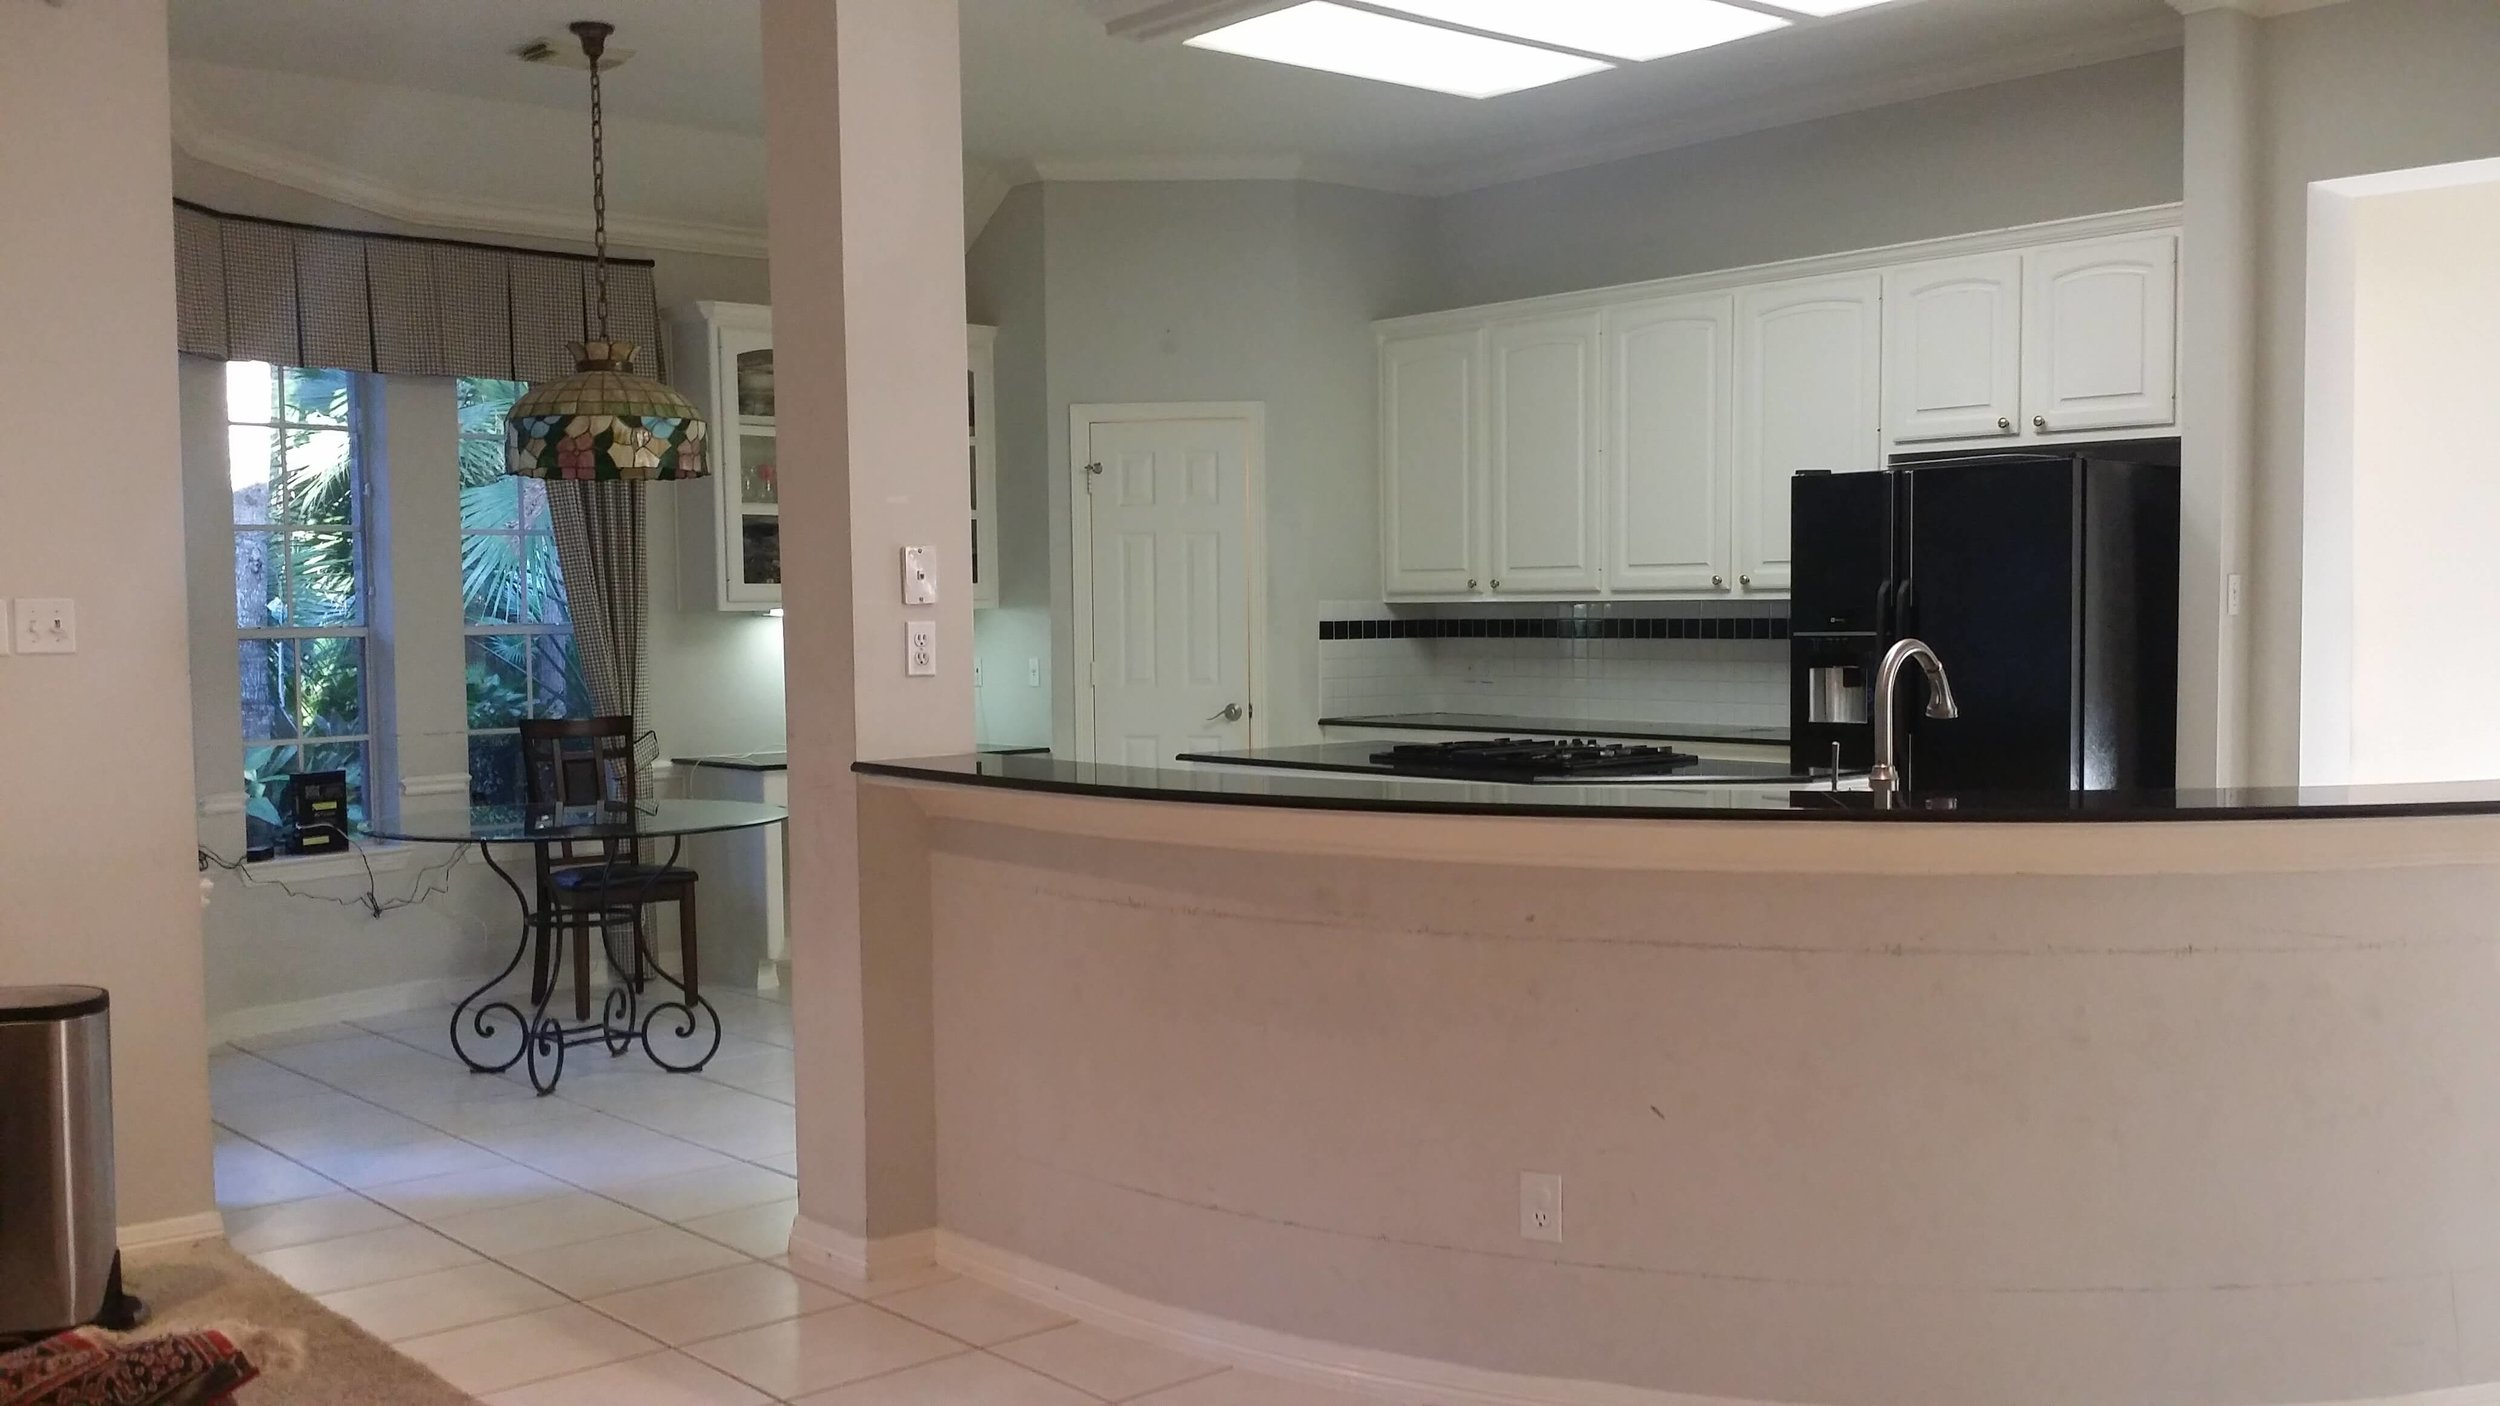 BEFORE - Sheetrock facing on bar and column that received high touch and traffic in this home. All were paneled in this remodel for a more cleanable surface and upgraded look. #kitchenbar #kitchendesign